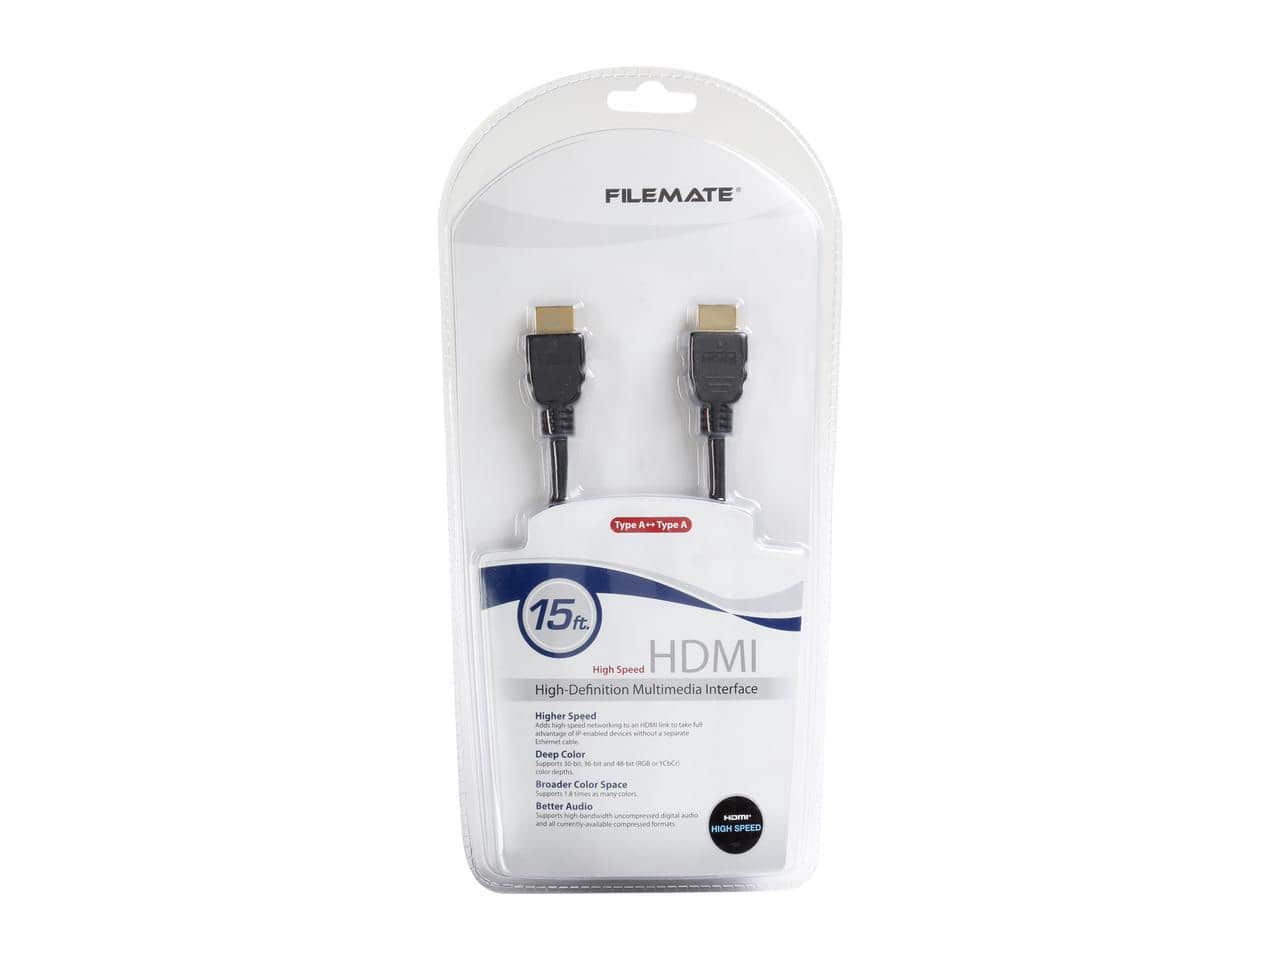 FileMate 15 ft. High Speed HDMI Cable $2.99 + FS